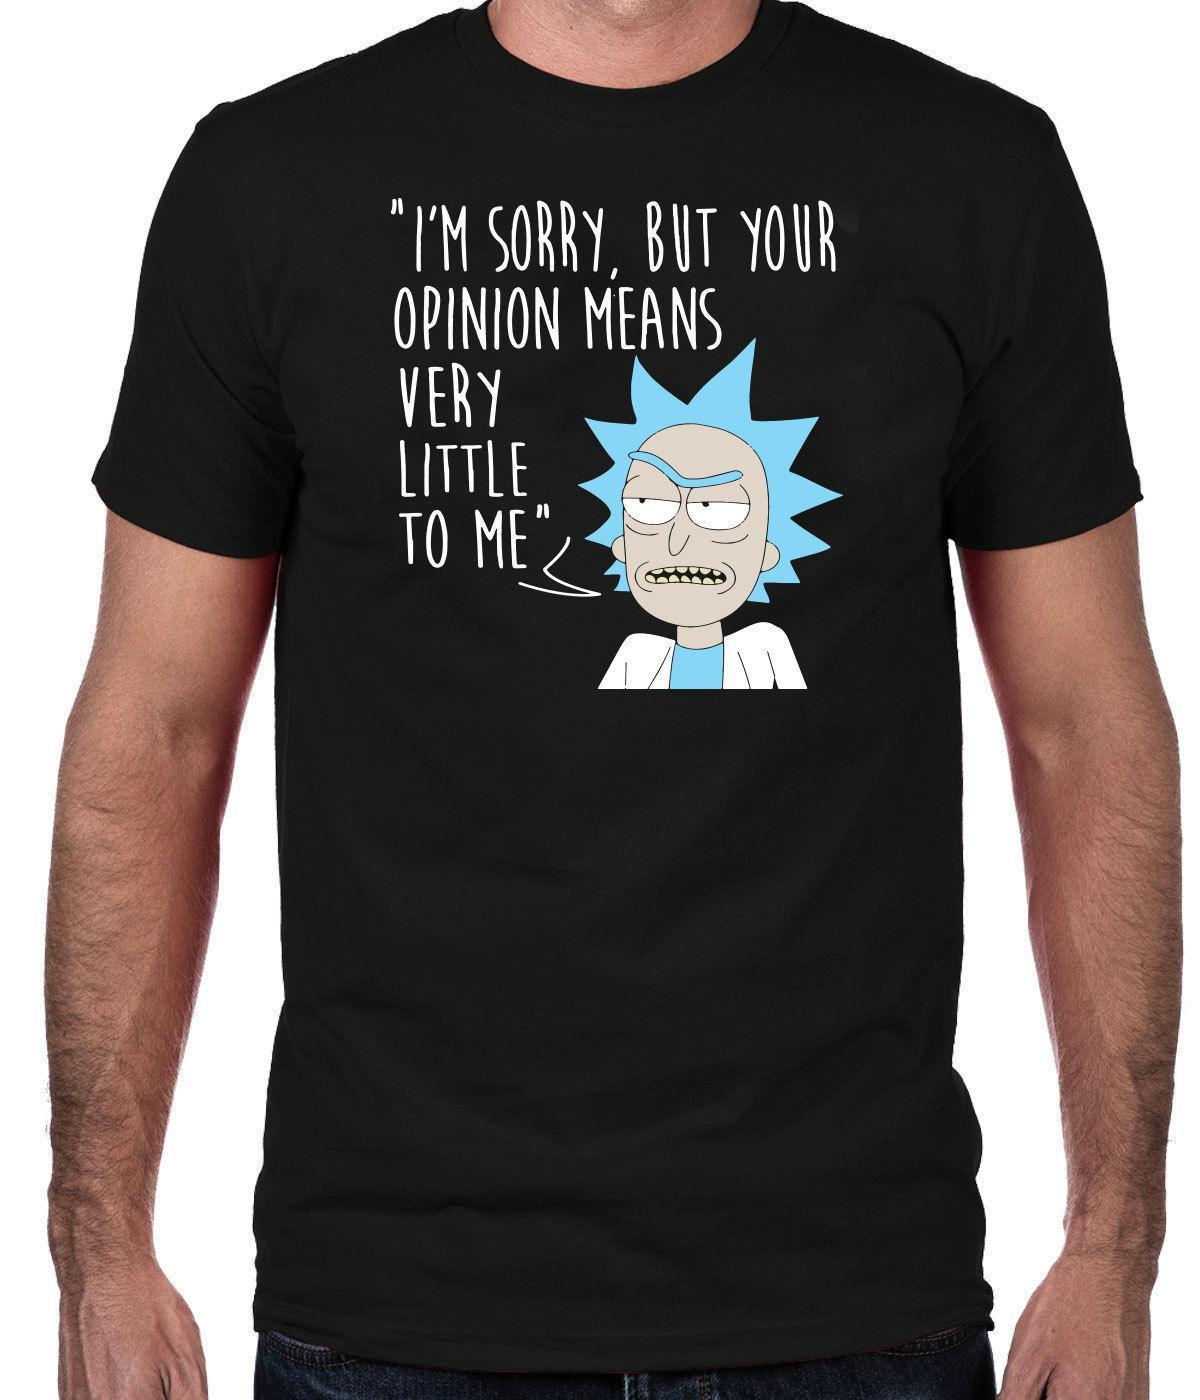 c895f4b7 Rick & Morty T-Shirt, Your Opinion Means Very Little To Me Men's Comedy T- Shirt